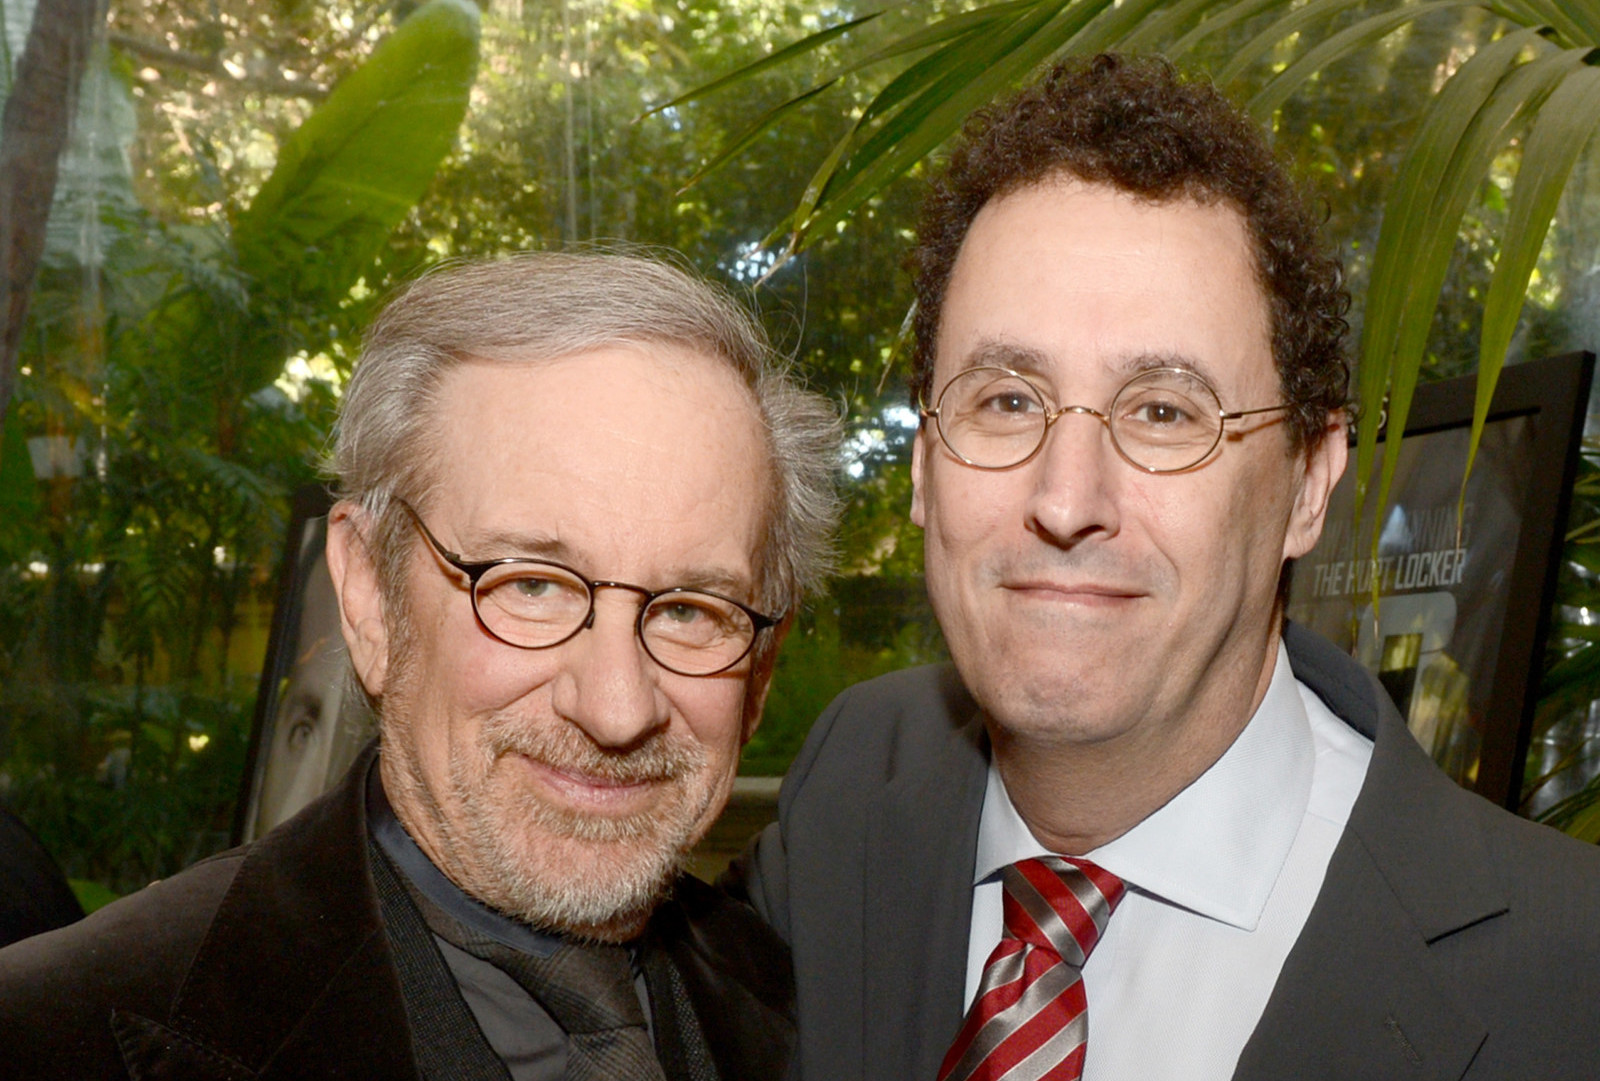 Steven Spielberg will be directing the movie, and Tony award-winning playwright Tony Kushner will be writing the script.